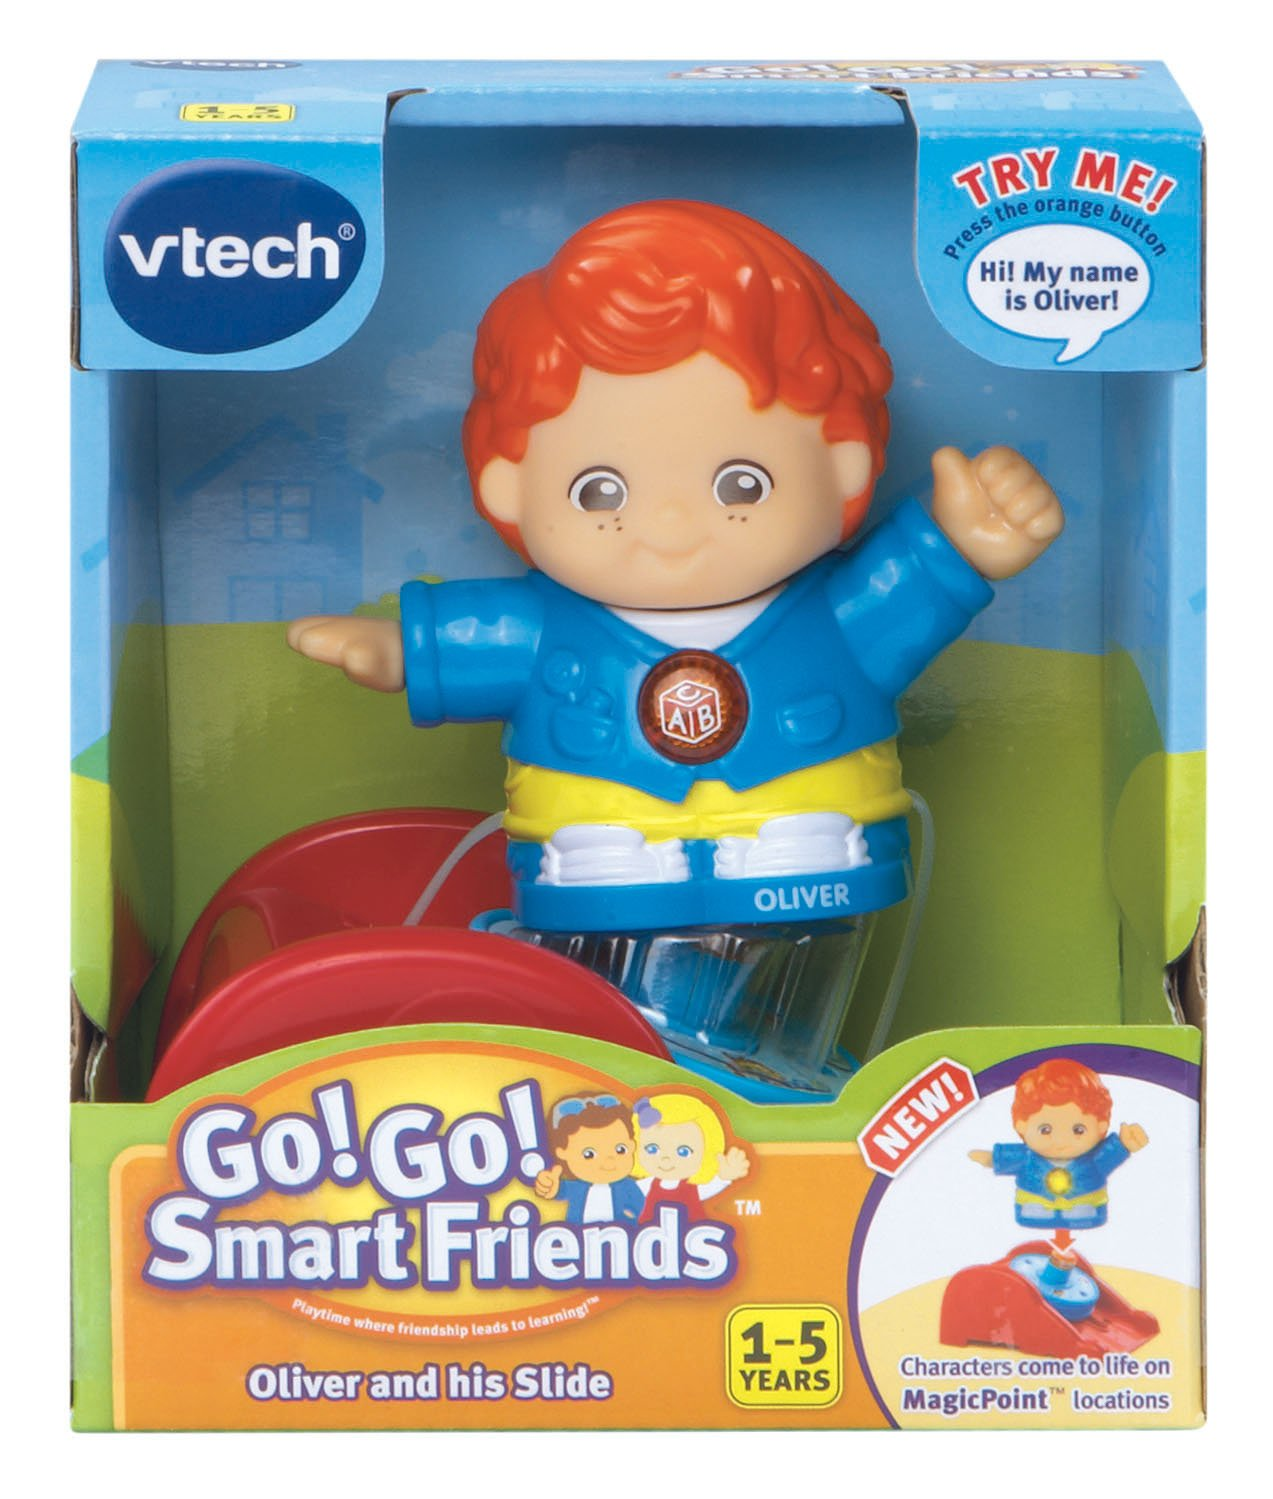 Amazon: Vtech Go! Go! Smart Friends Oliver And His Slide: Toys & Games